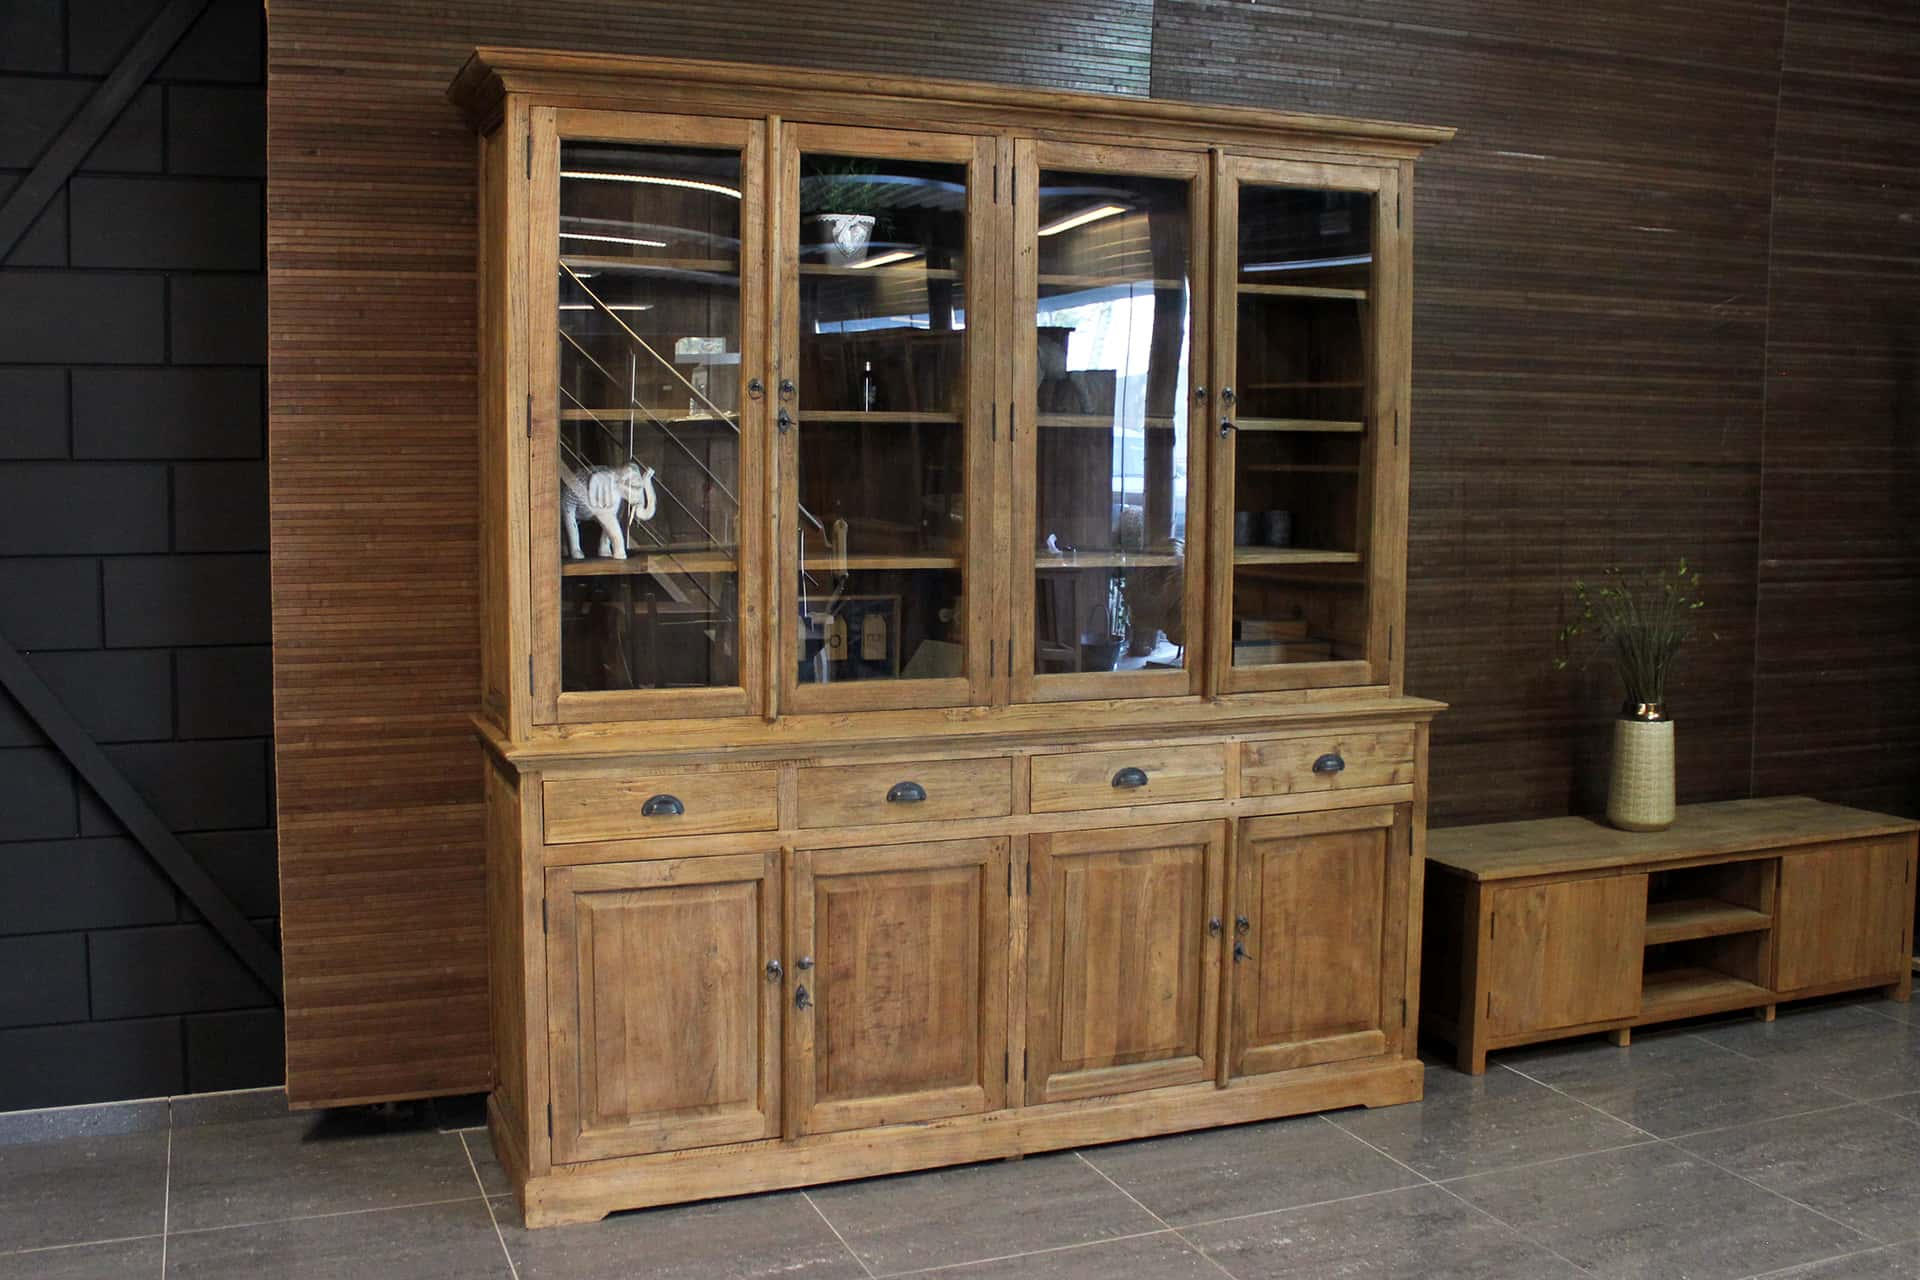 Teak Asli 210IL Old | rural teak buffet cabinet in solid old teak. Wooden display cabinets and buffet cabinets from Indonesia, quality - TEAK2.